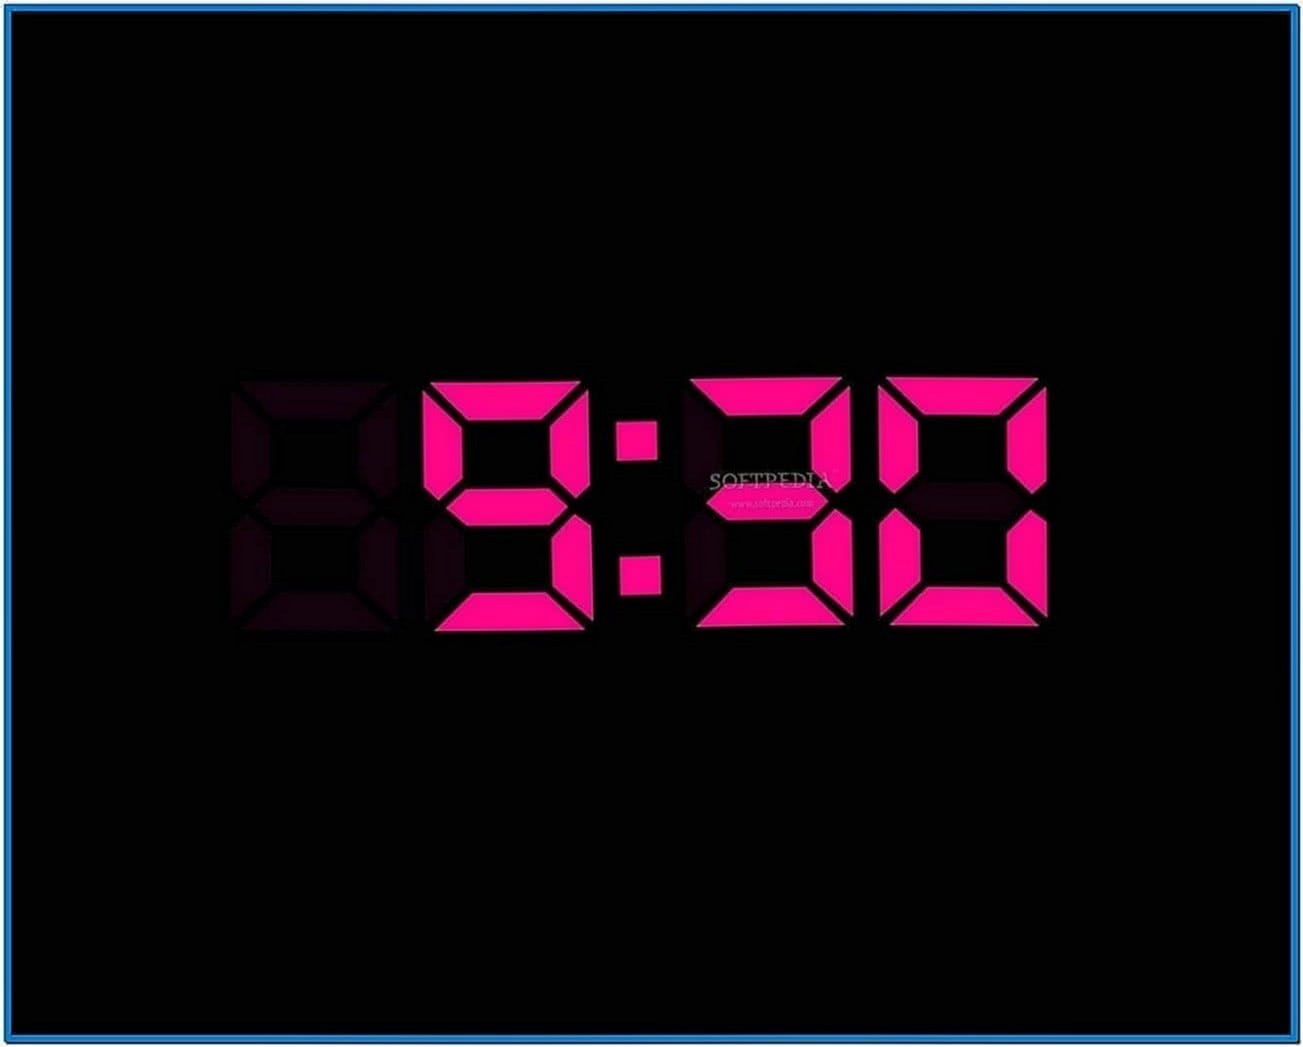 Digital Screensaver Clock Desktop